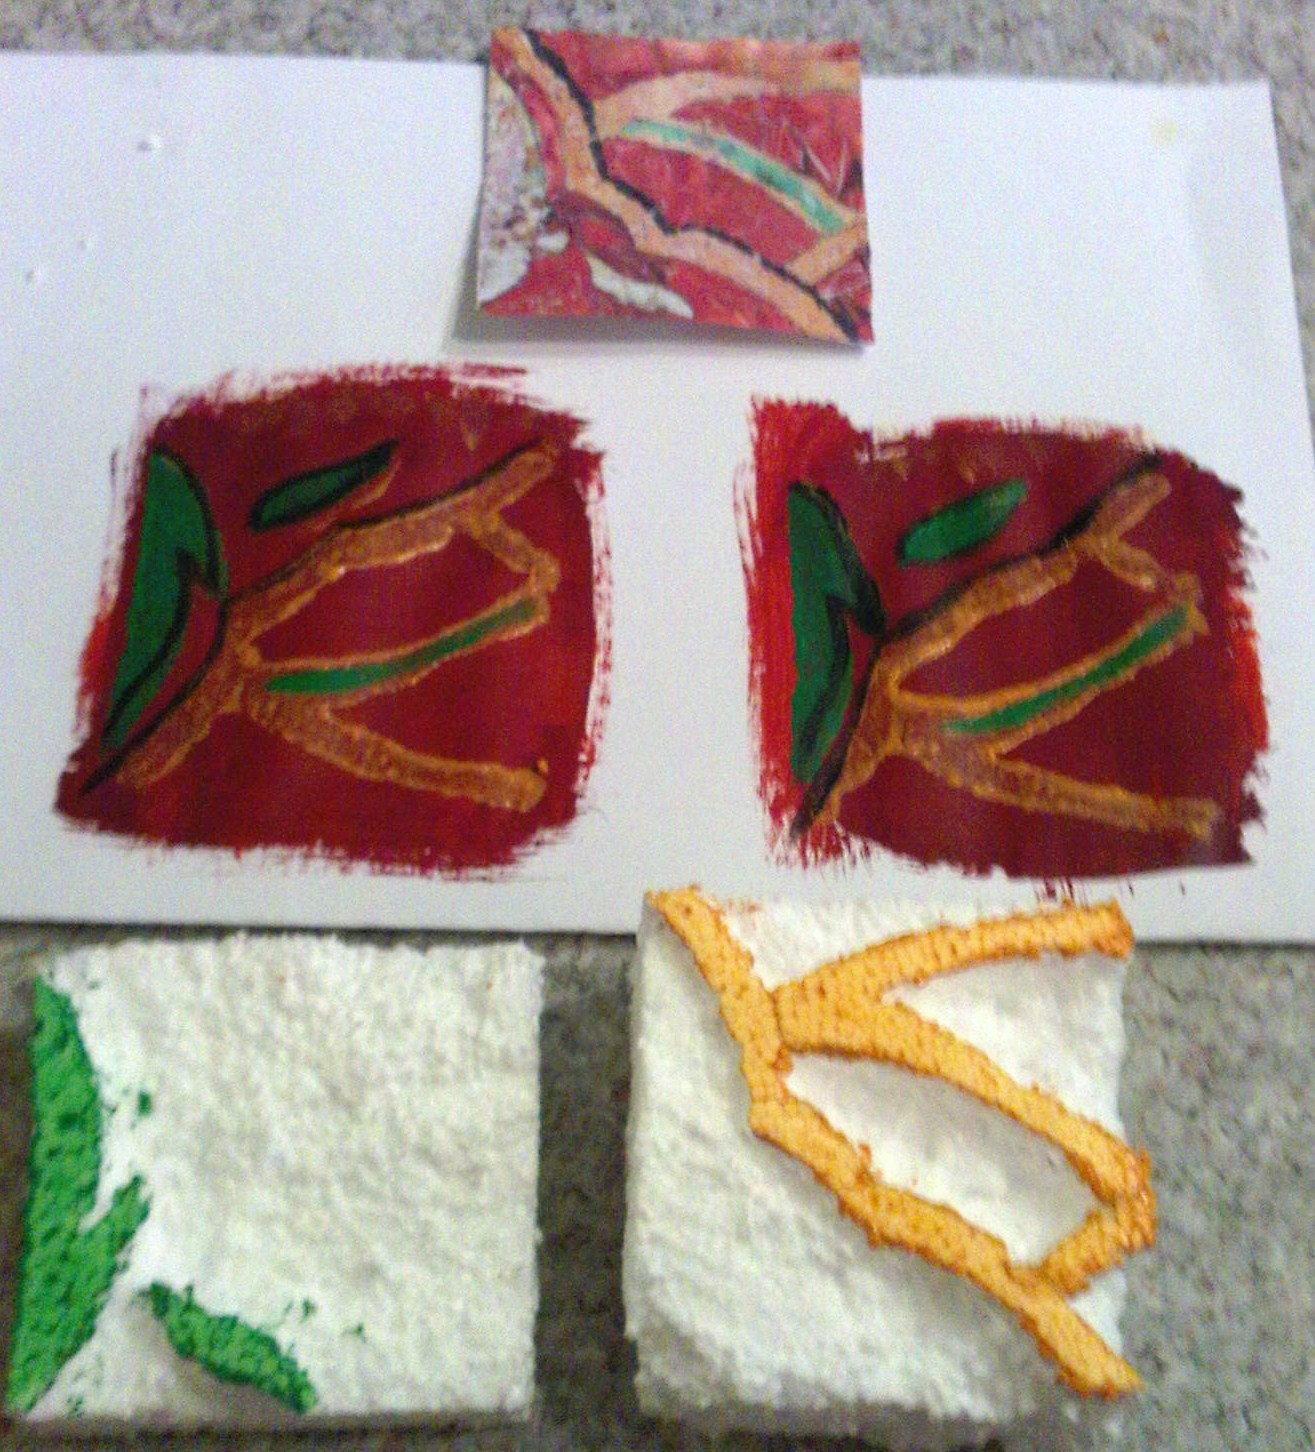 recycle4real: 27th project completed - Polystyrene printing blocks on